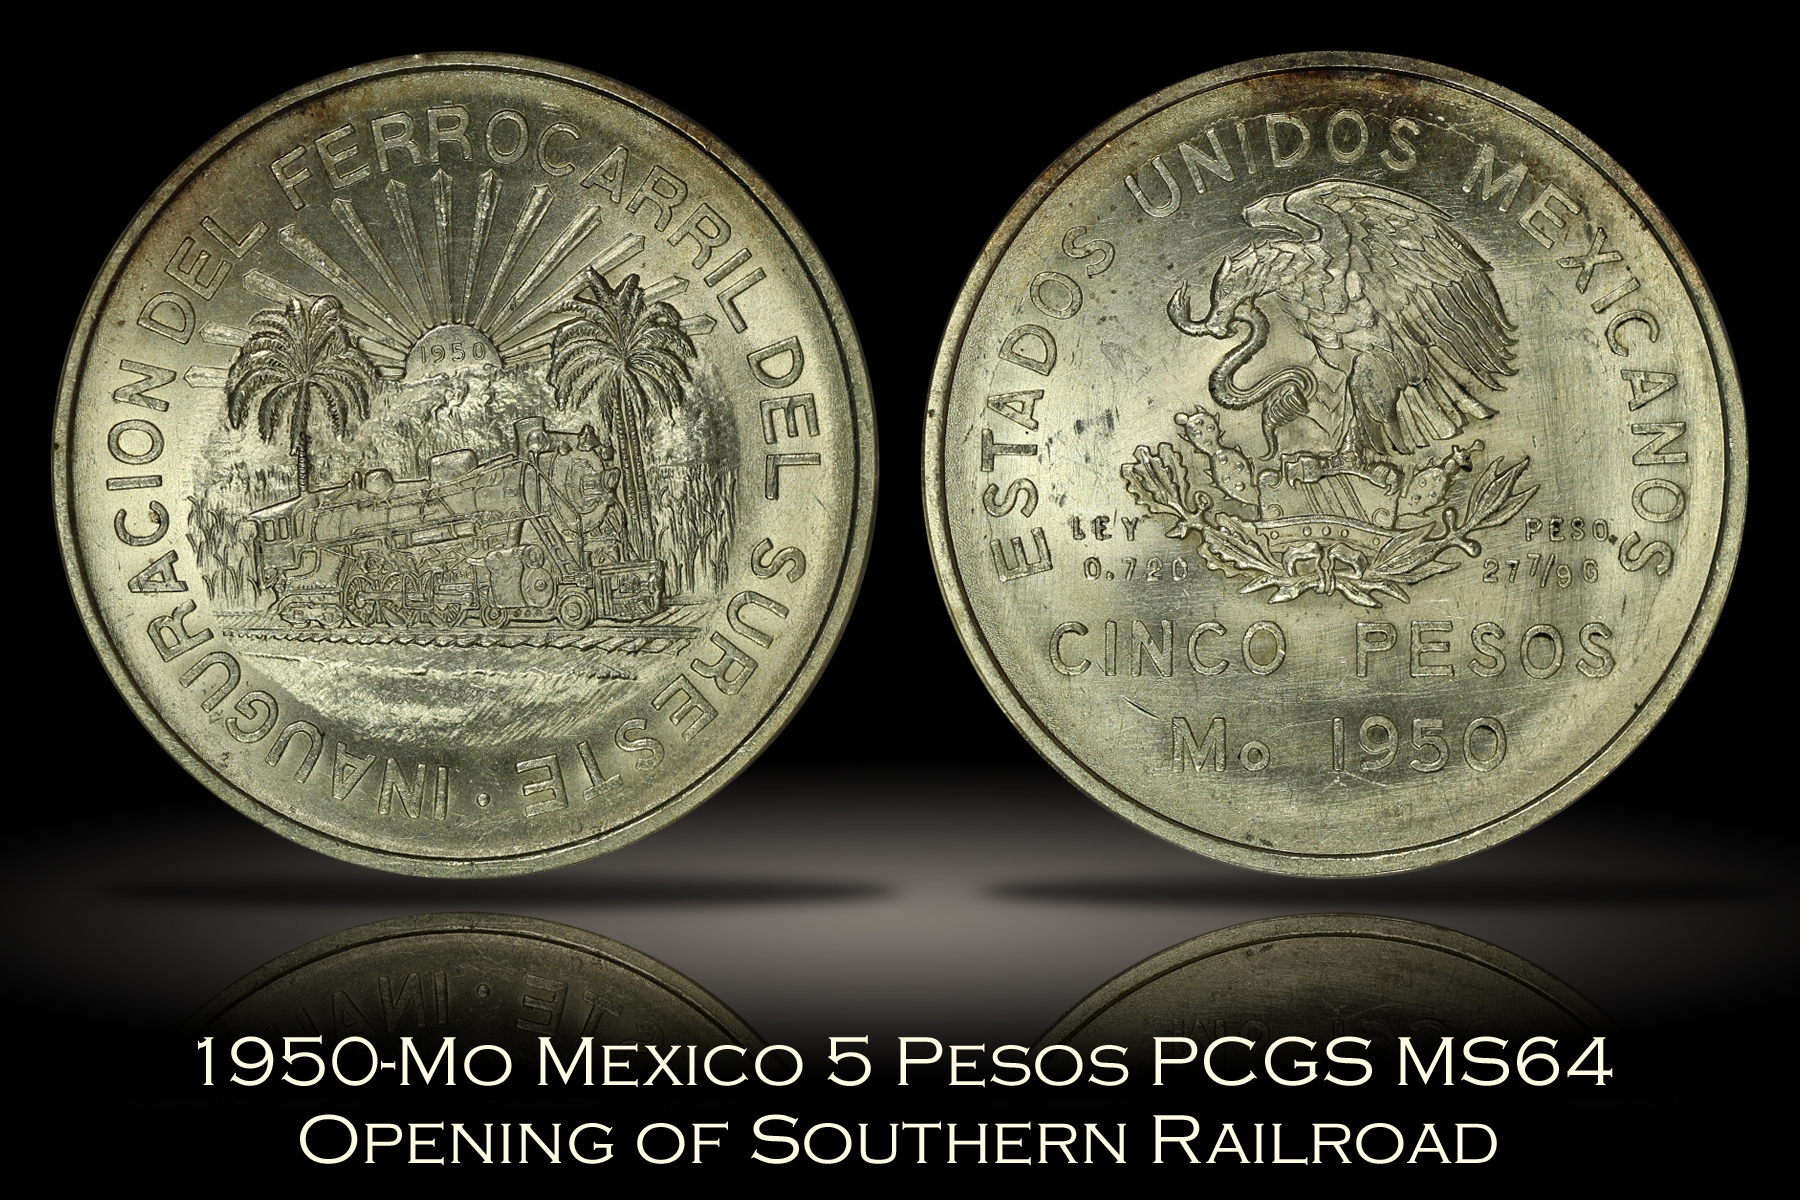 1950-Mo Mexico 5 Pesos Opening of Southern Railroad PCGS MS64